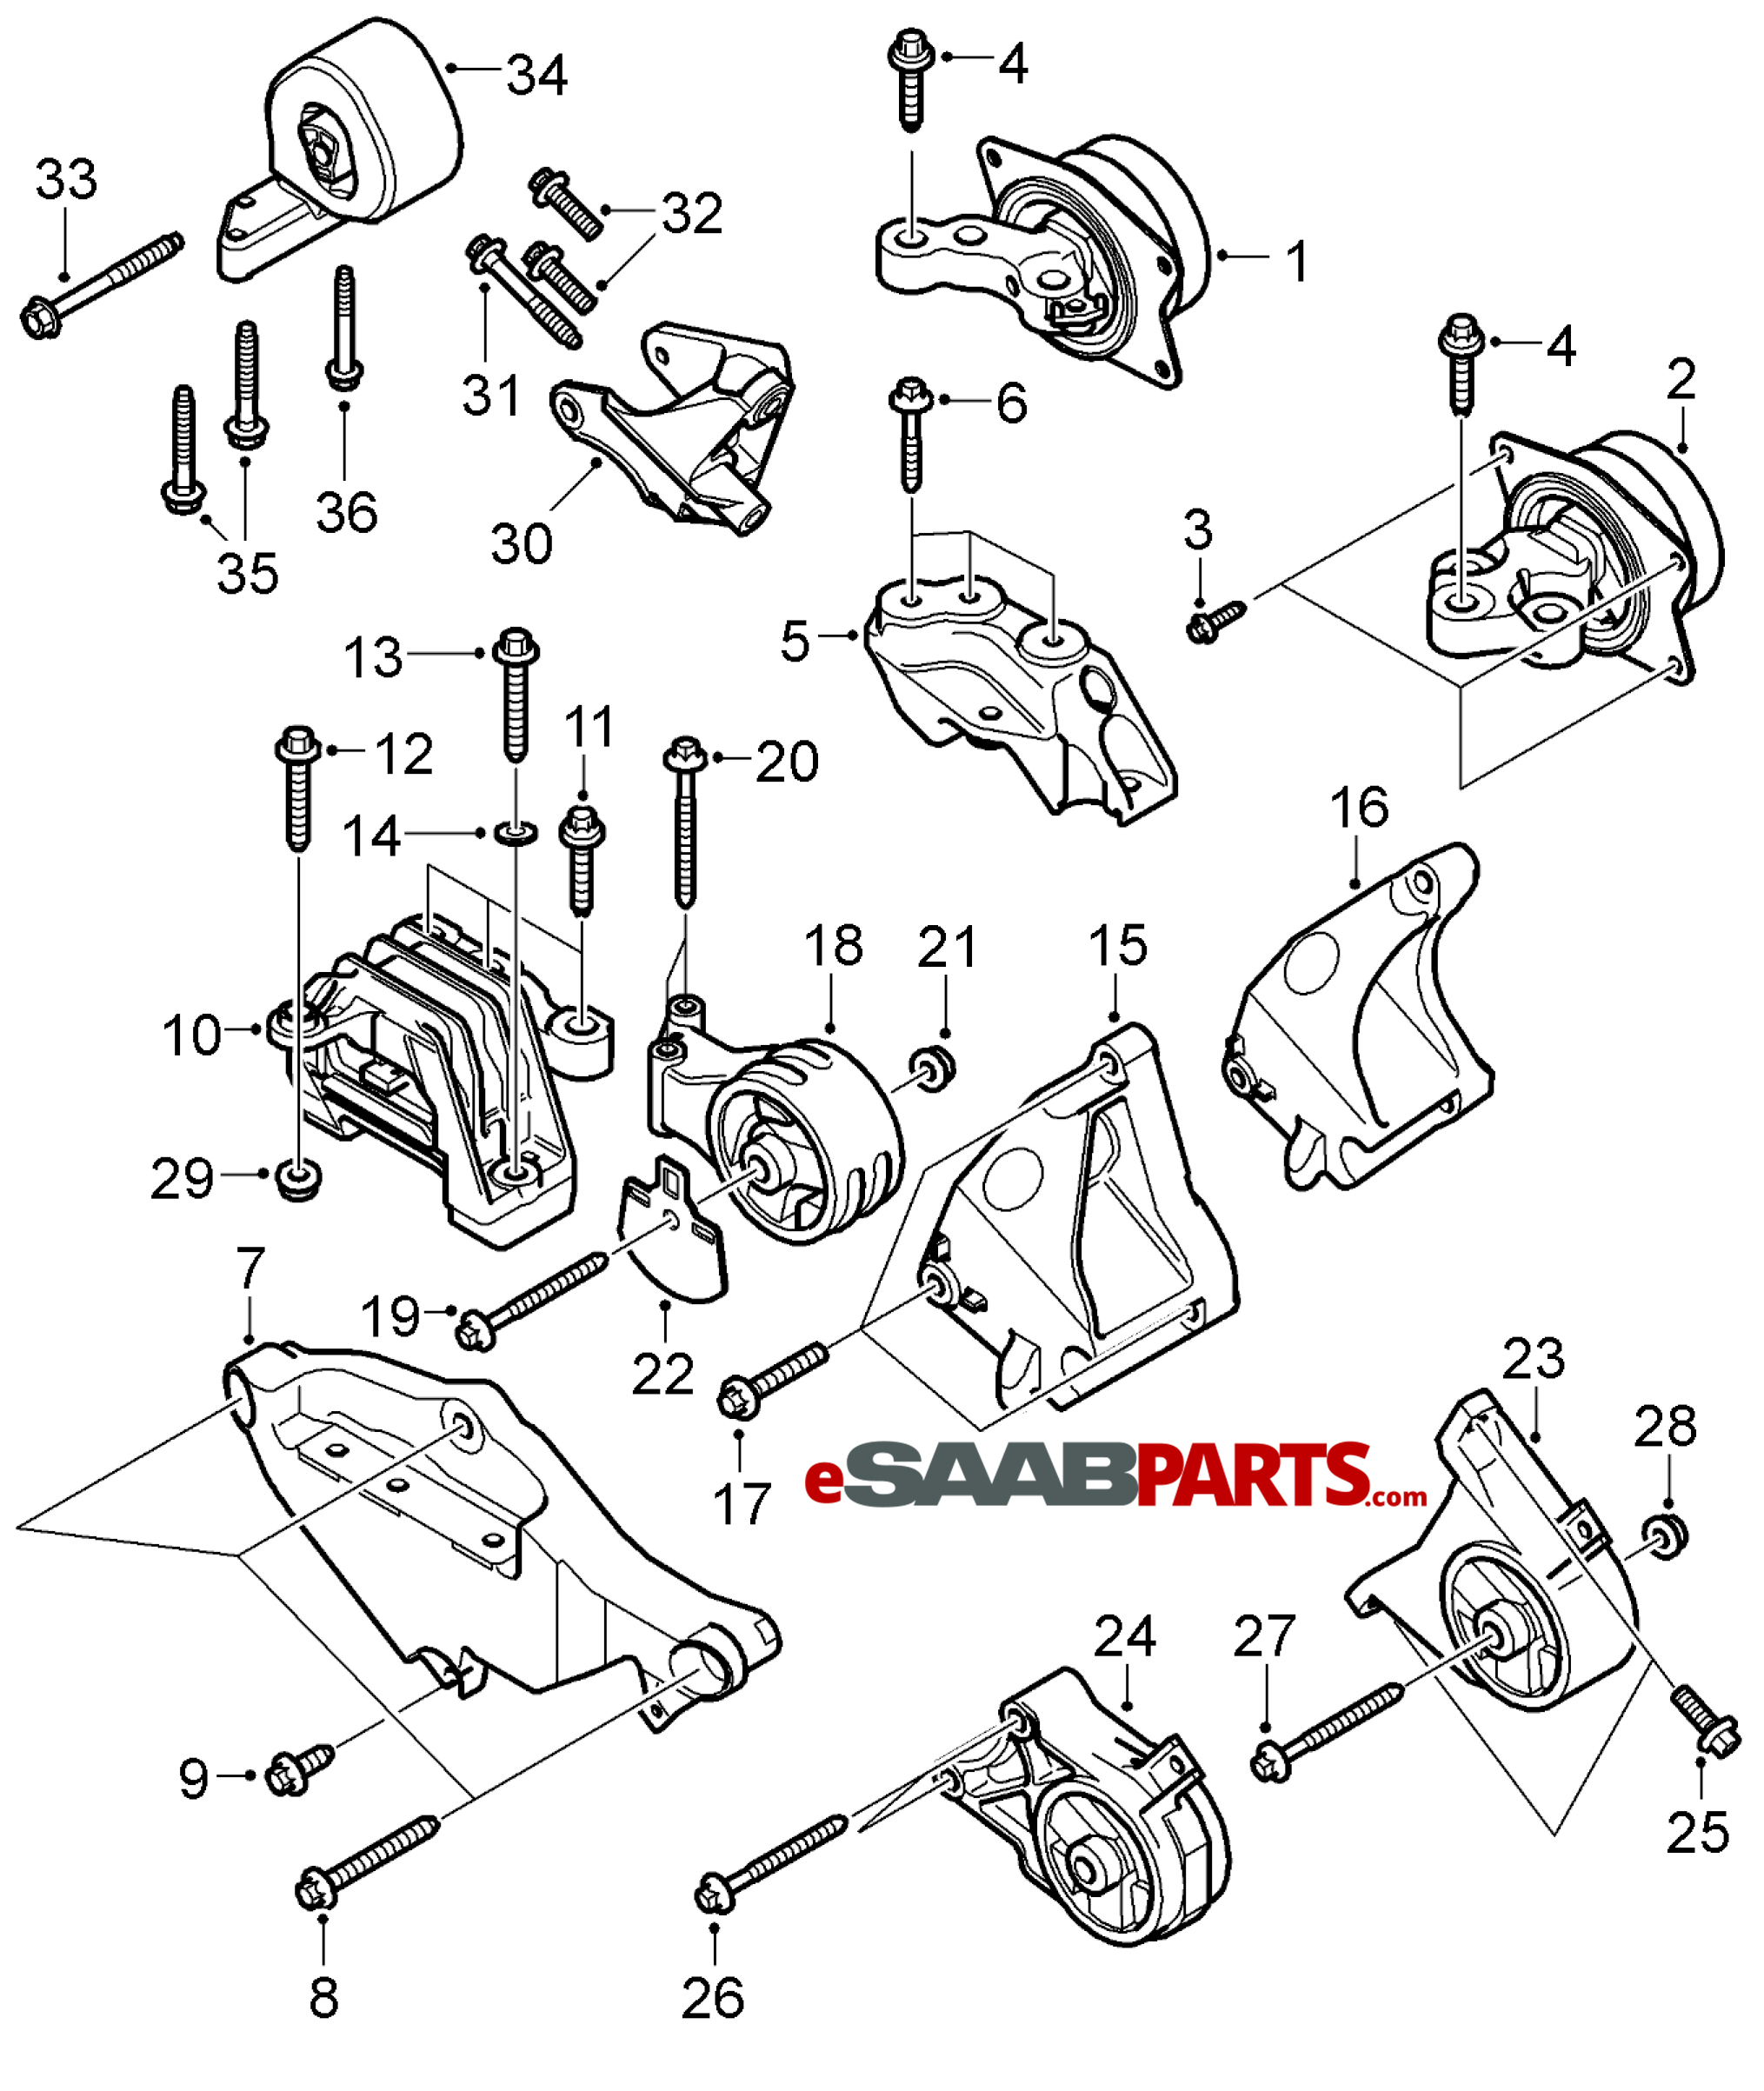 12777976 saab engine mount attachment bracket lh w xwd for 9 3 v6 b284 genuine saab parts